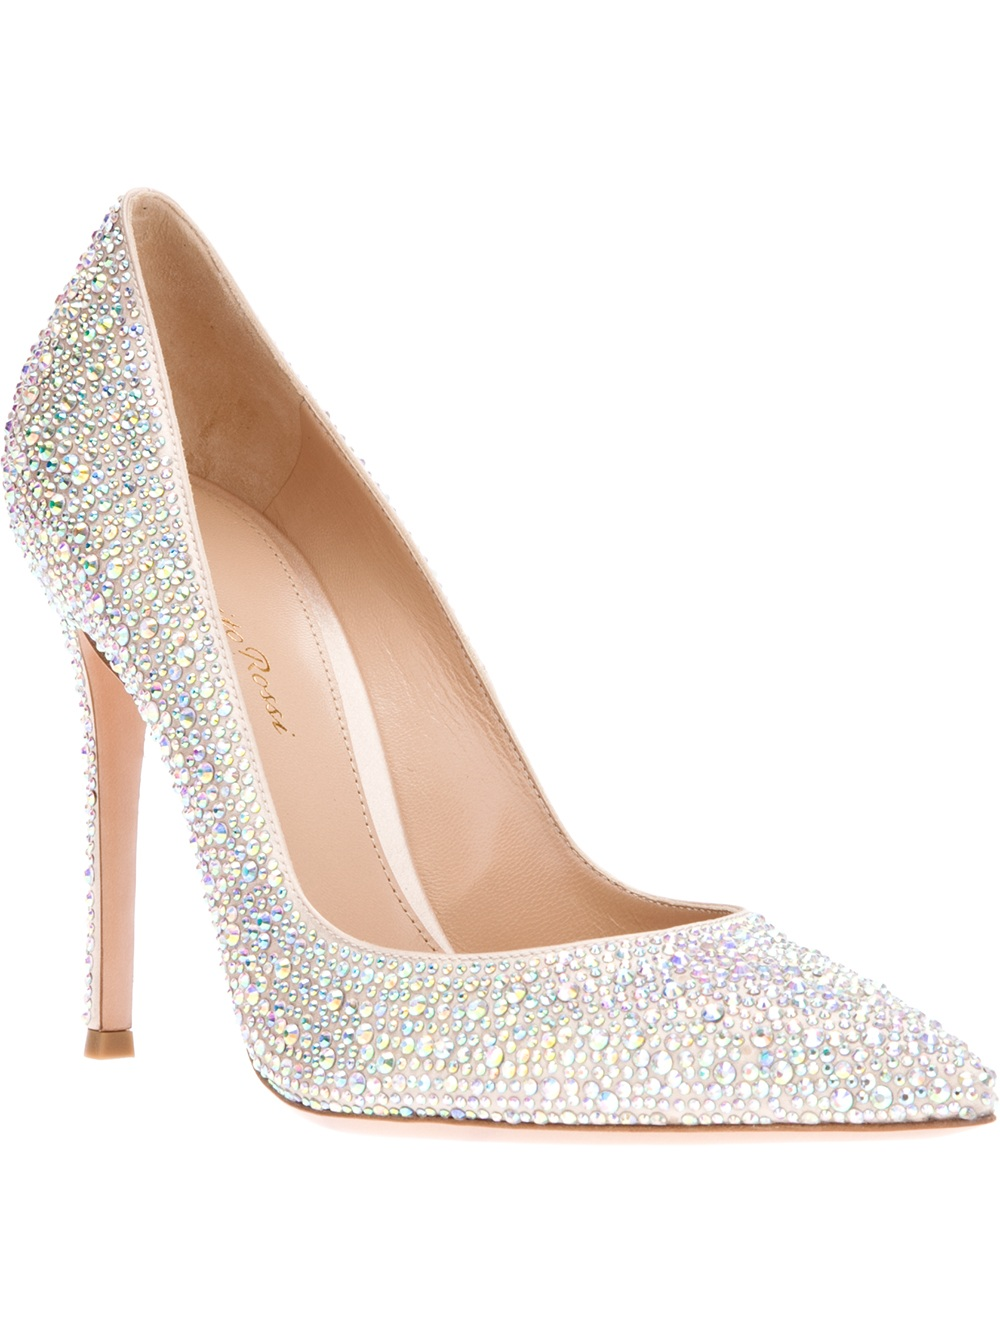 06fcc001607 Lyst - Gianvito Rossi Swarovski Crystal Pump in Metallic